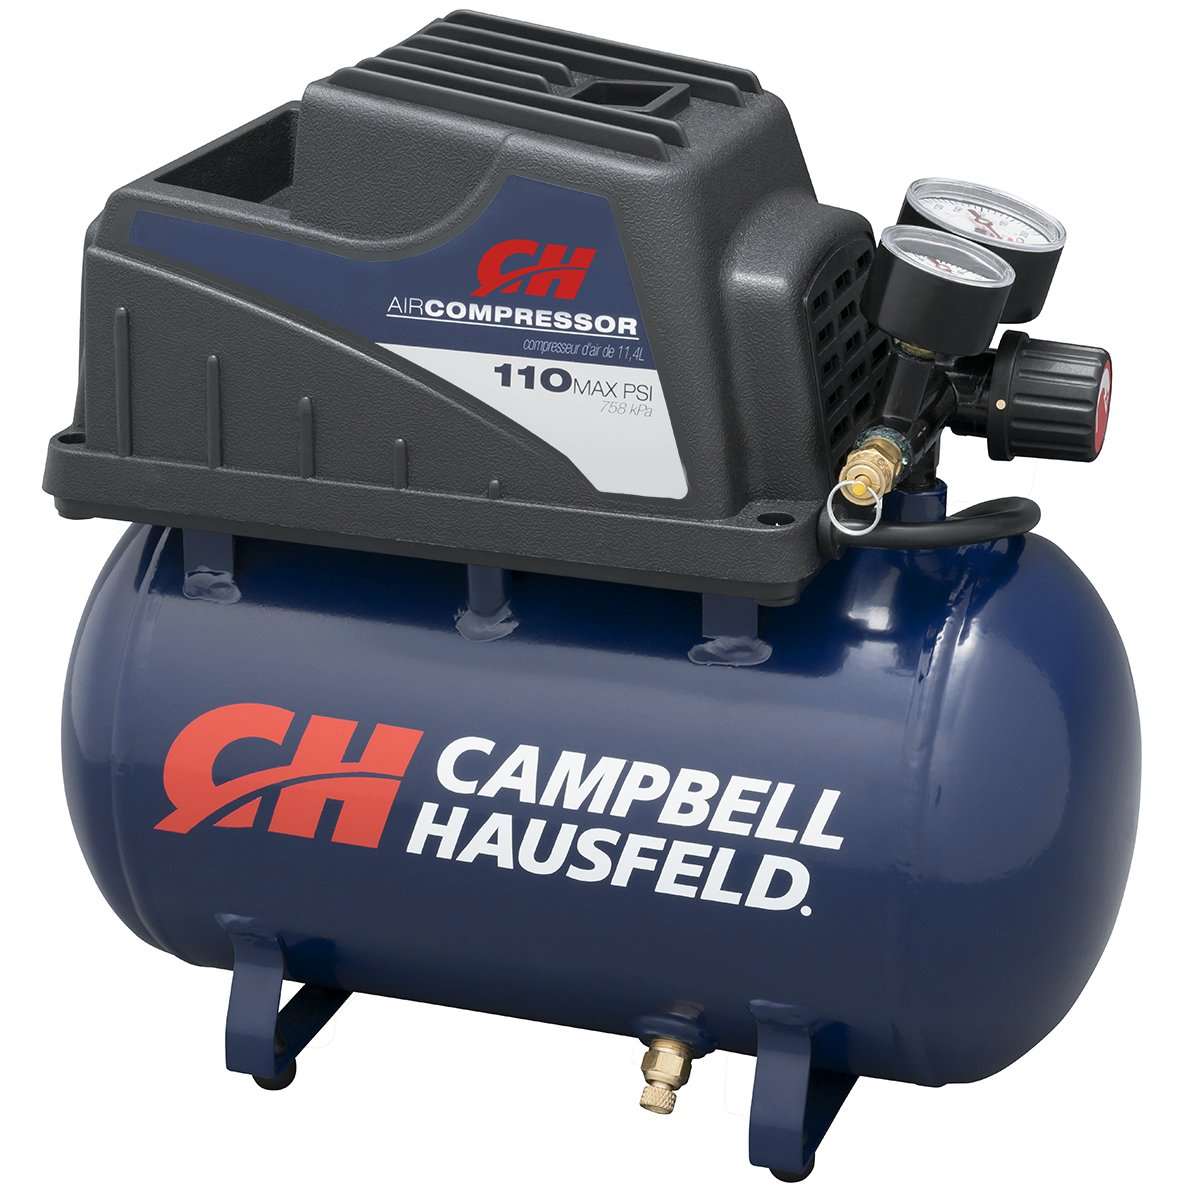 Portable Air Compressor, 2-Gallon Hot Dog Tank, Oilless with Air Hose and Inflation Kit (Campbell Hausfeld FP209000AV) by Campbell Hausfeld